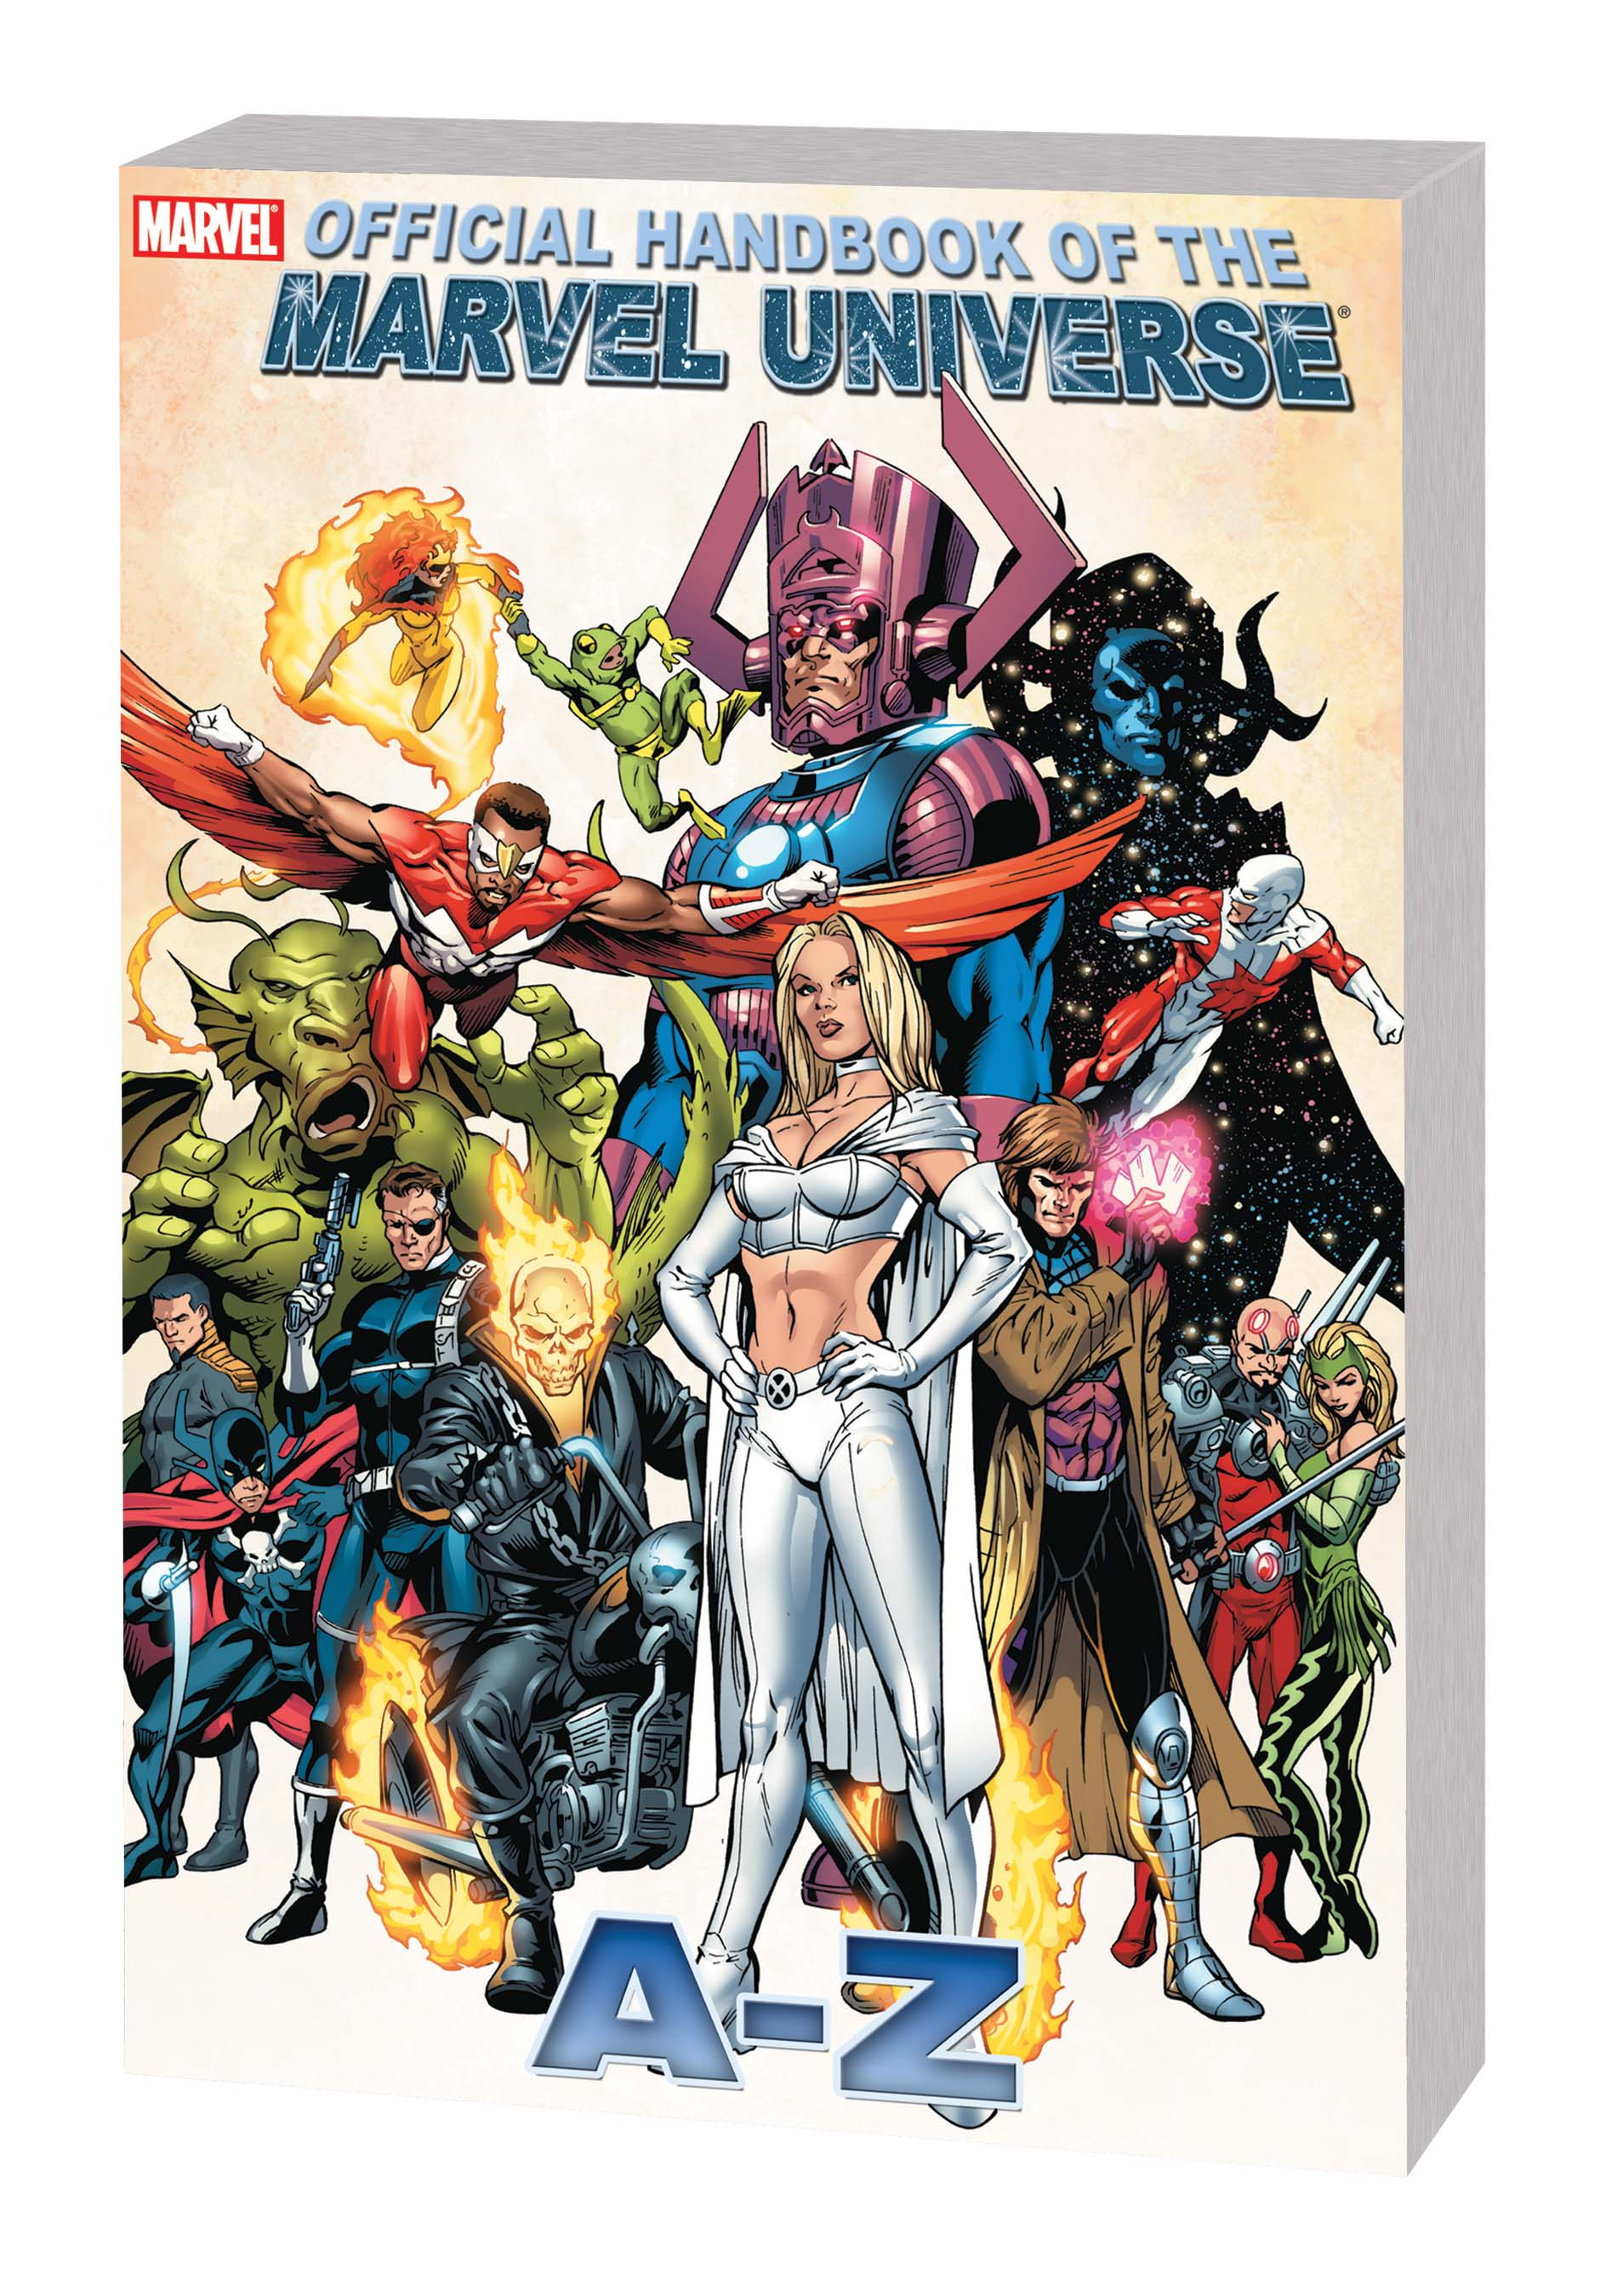 OFFICIAL HANDBOOK OF THE MARVEL UNIVERSE A TO Z VOL. 4 TPB (Trade Paperback)